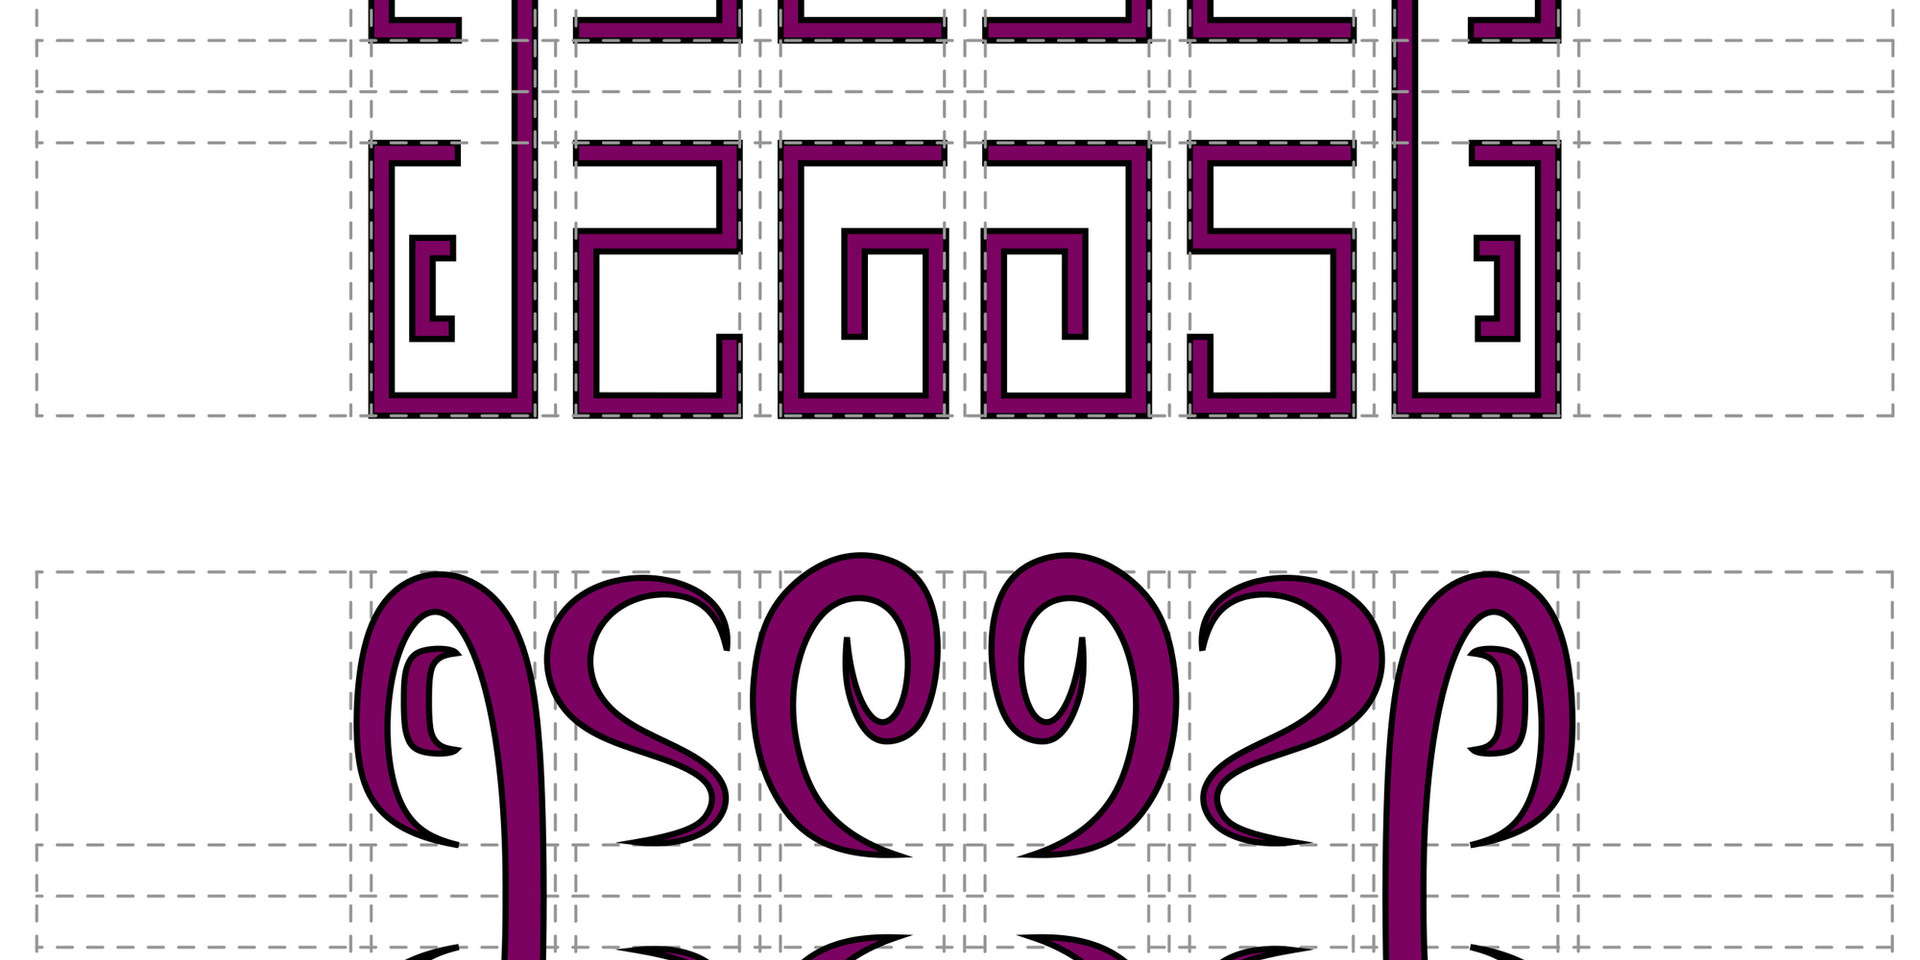 Playscapes Kufic Script Form Finding